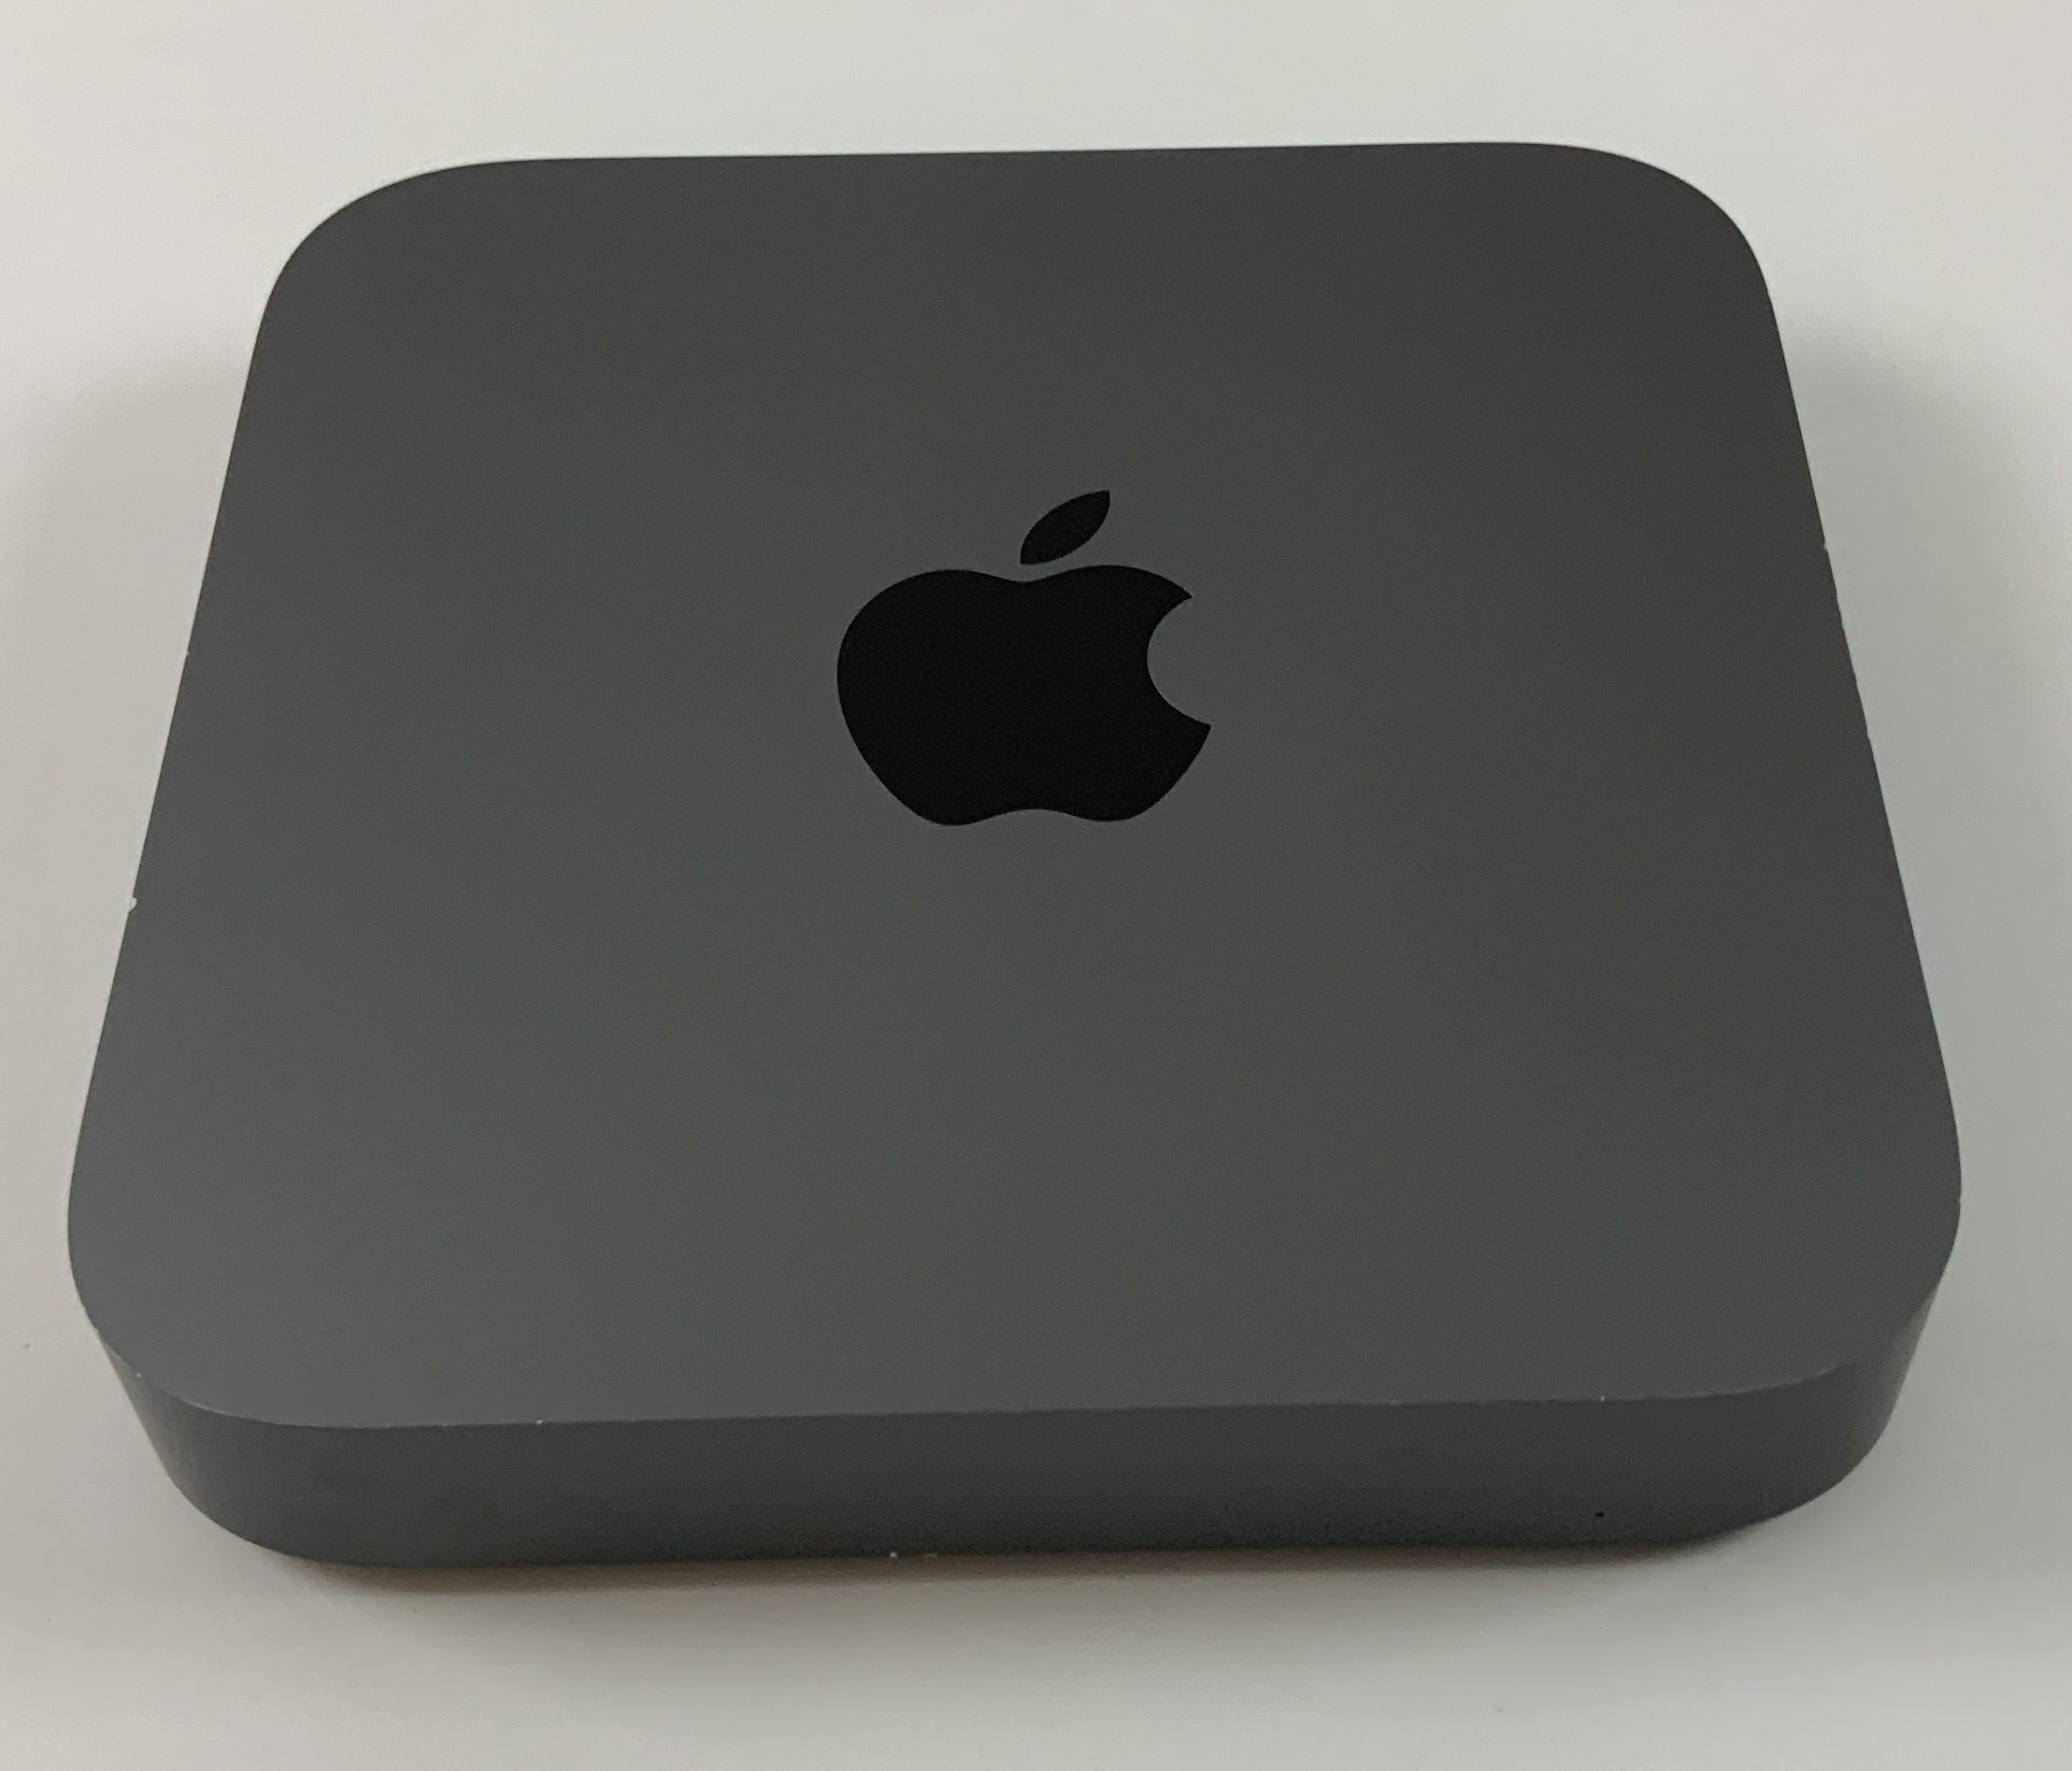 Mac Mini Late 2018 (Intel 6-Core i5 3.0 GHz 32 GB RAM 256 GB SSD), Intel 6-Core i5 3.0 GHz, 32 GB RAM, 256 GB SSD, obraz 1